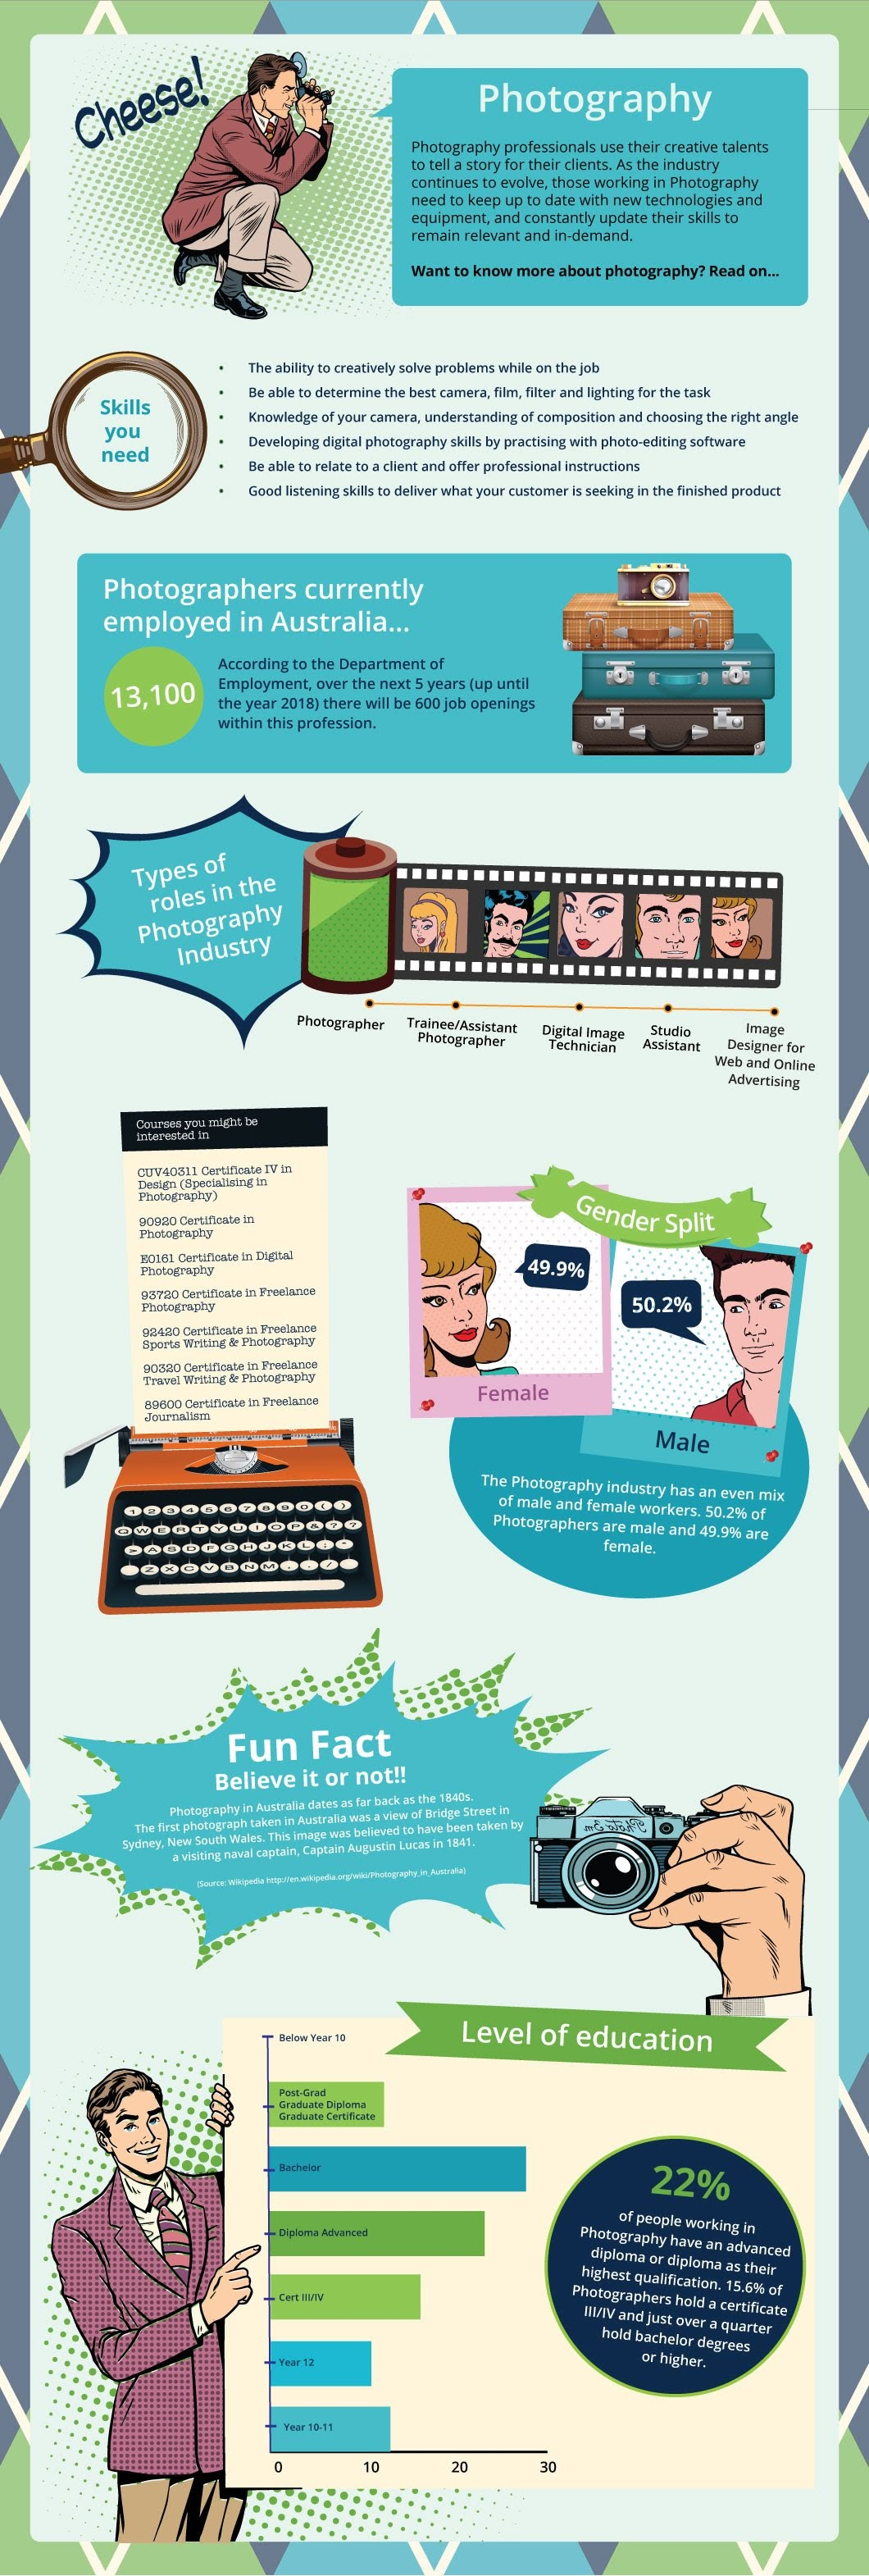 Careers in photography are highly creative #infographic